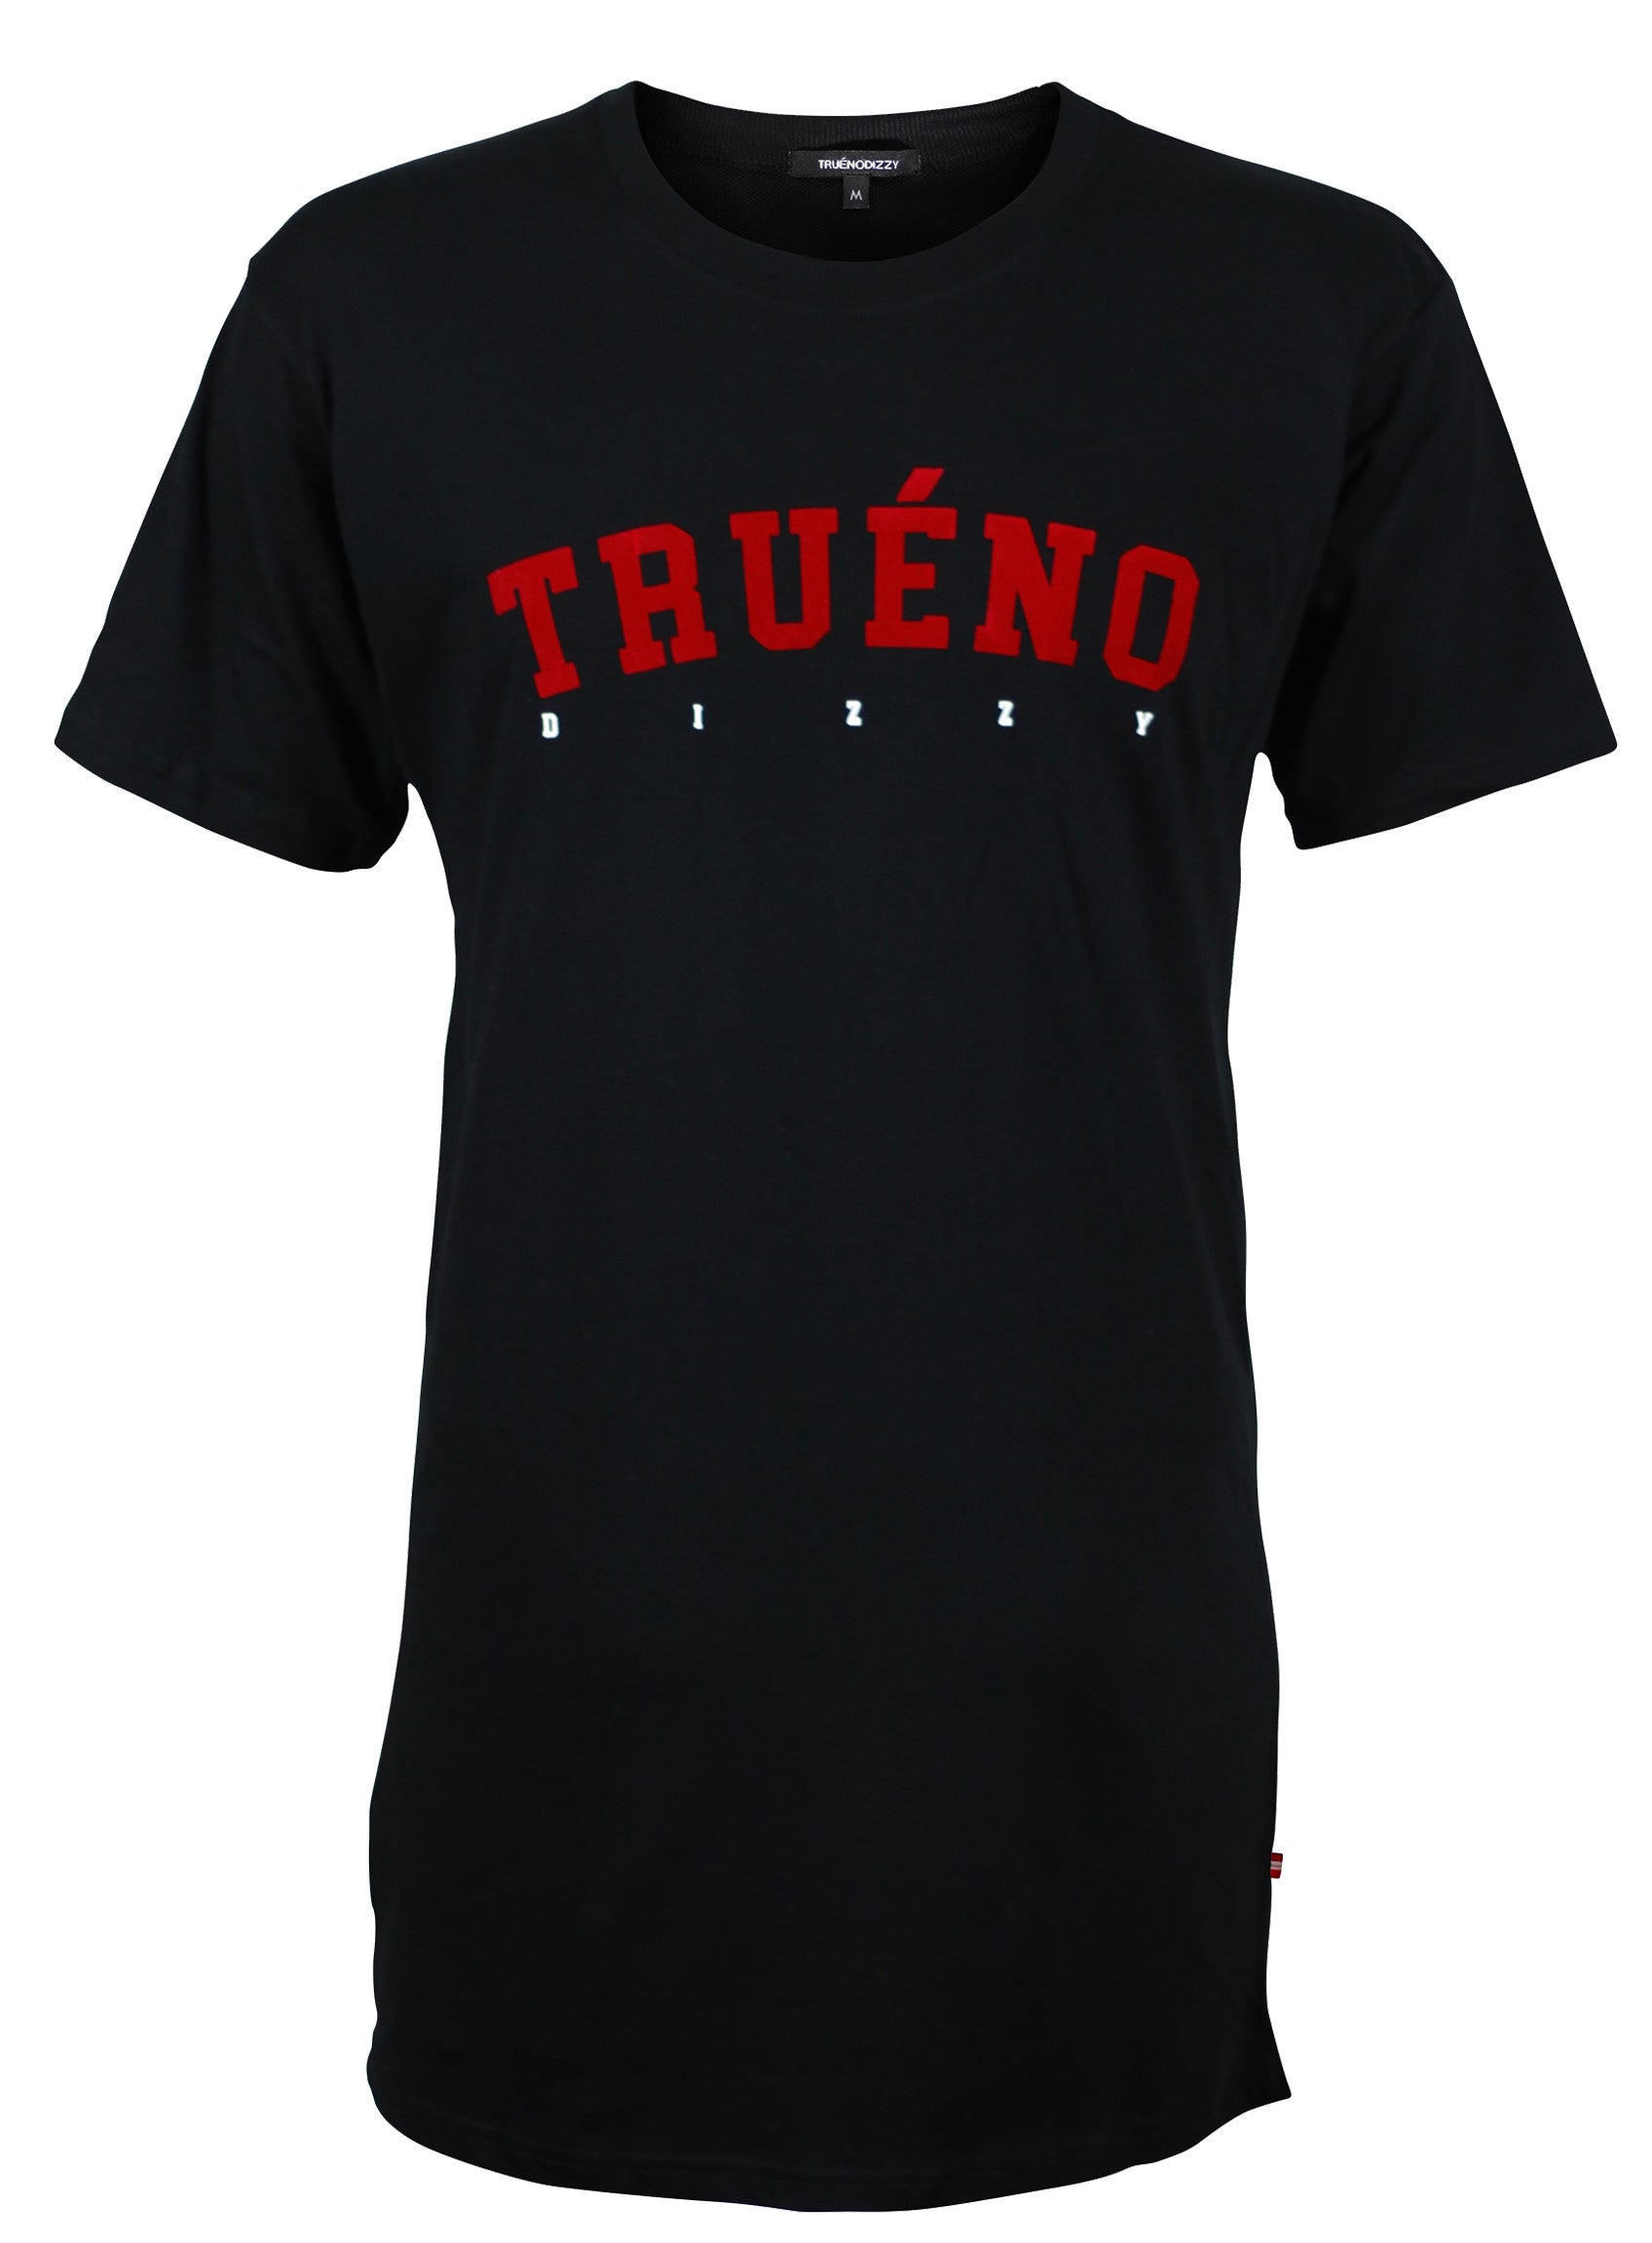 Long Body Truéno Flag T-Shirt